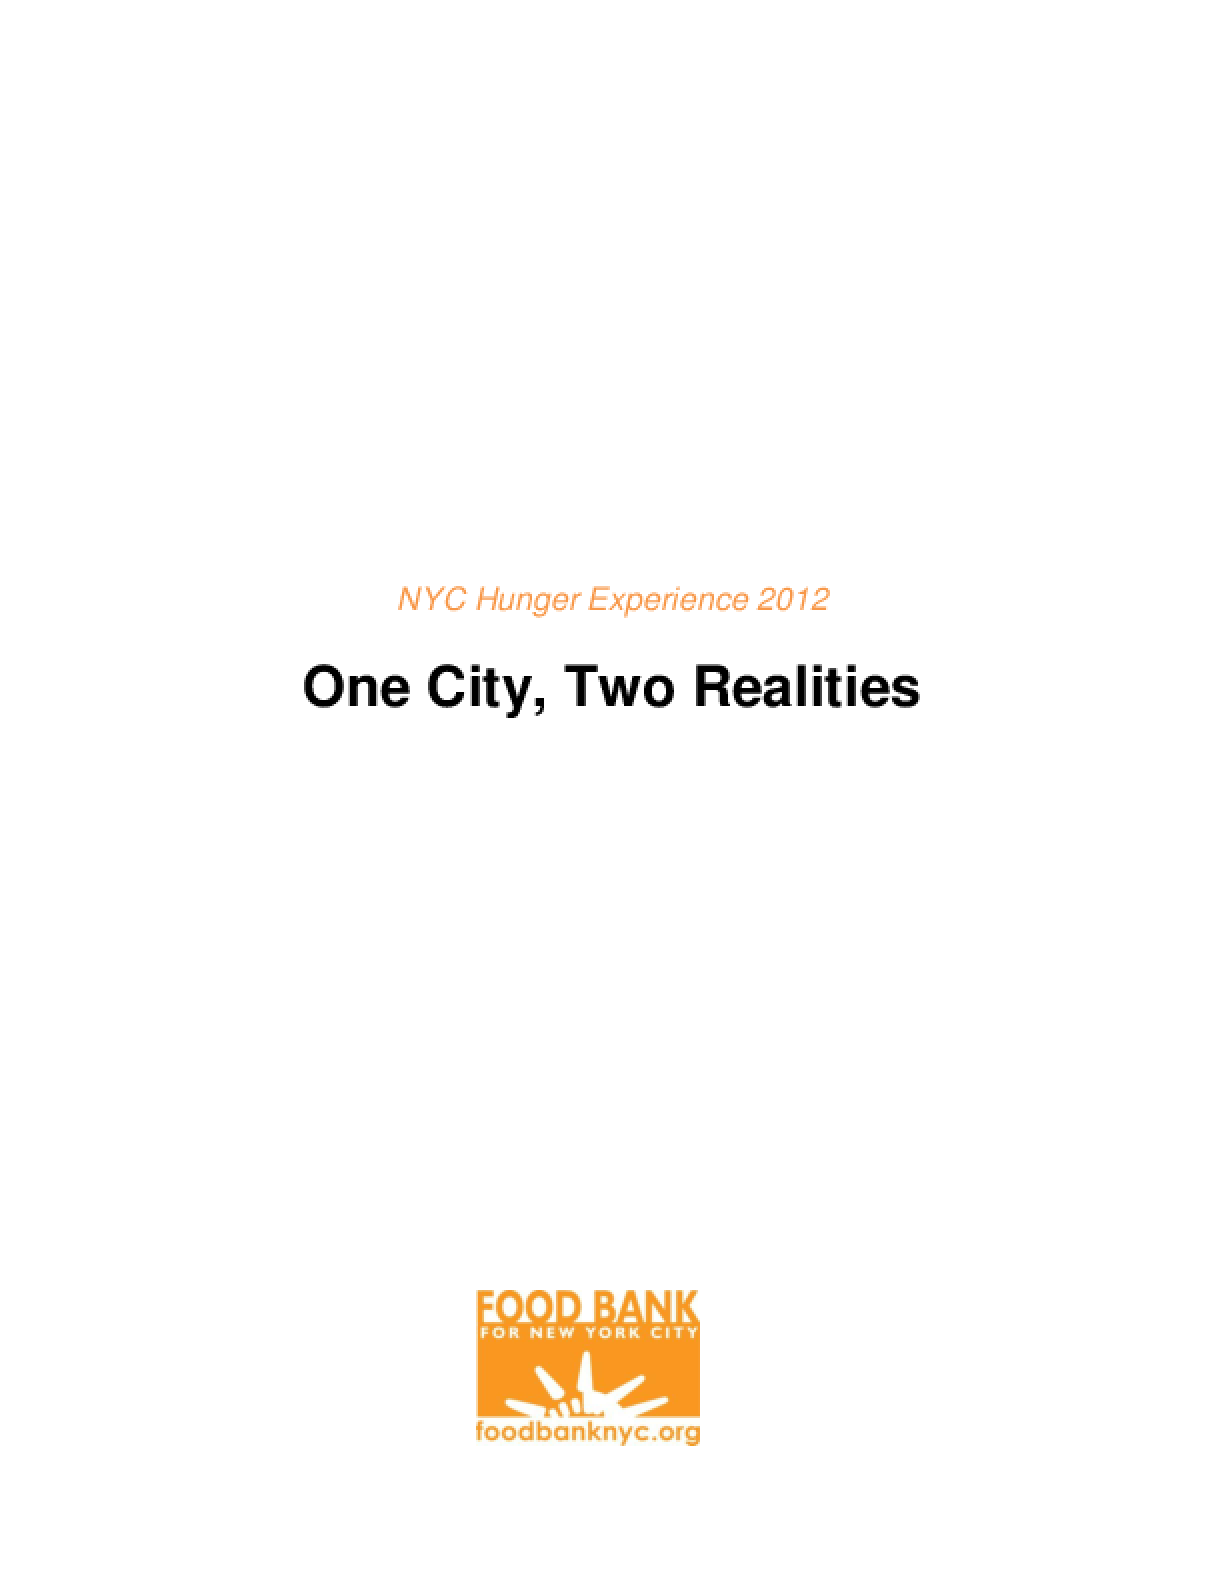 NYC Hunger Experience 2012: One City, Two Realities